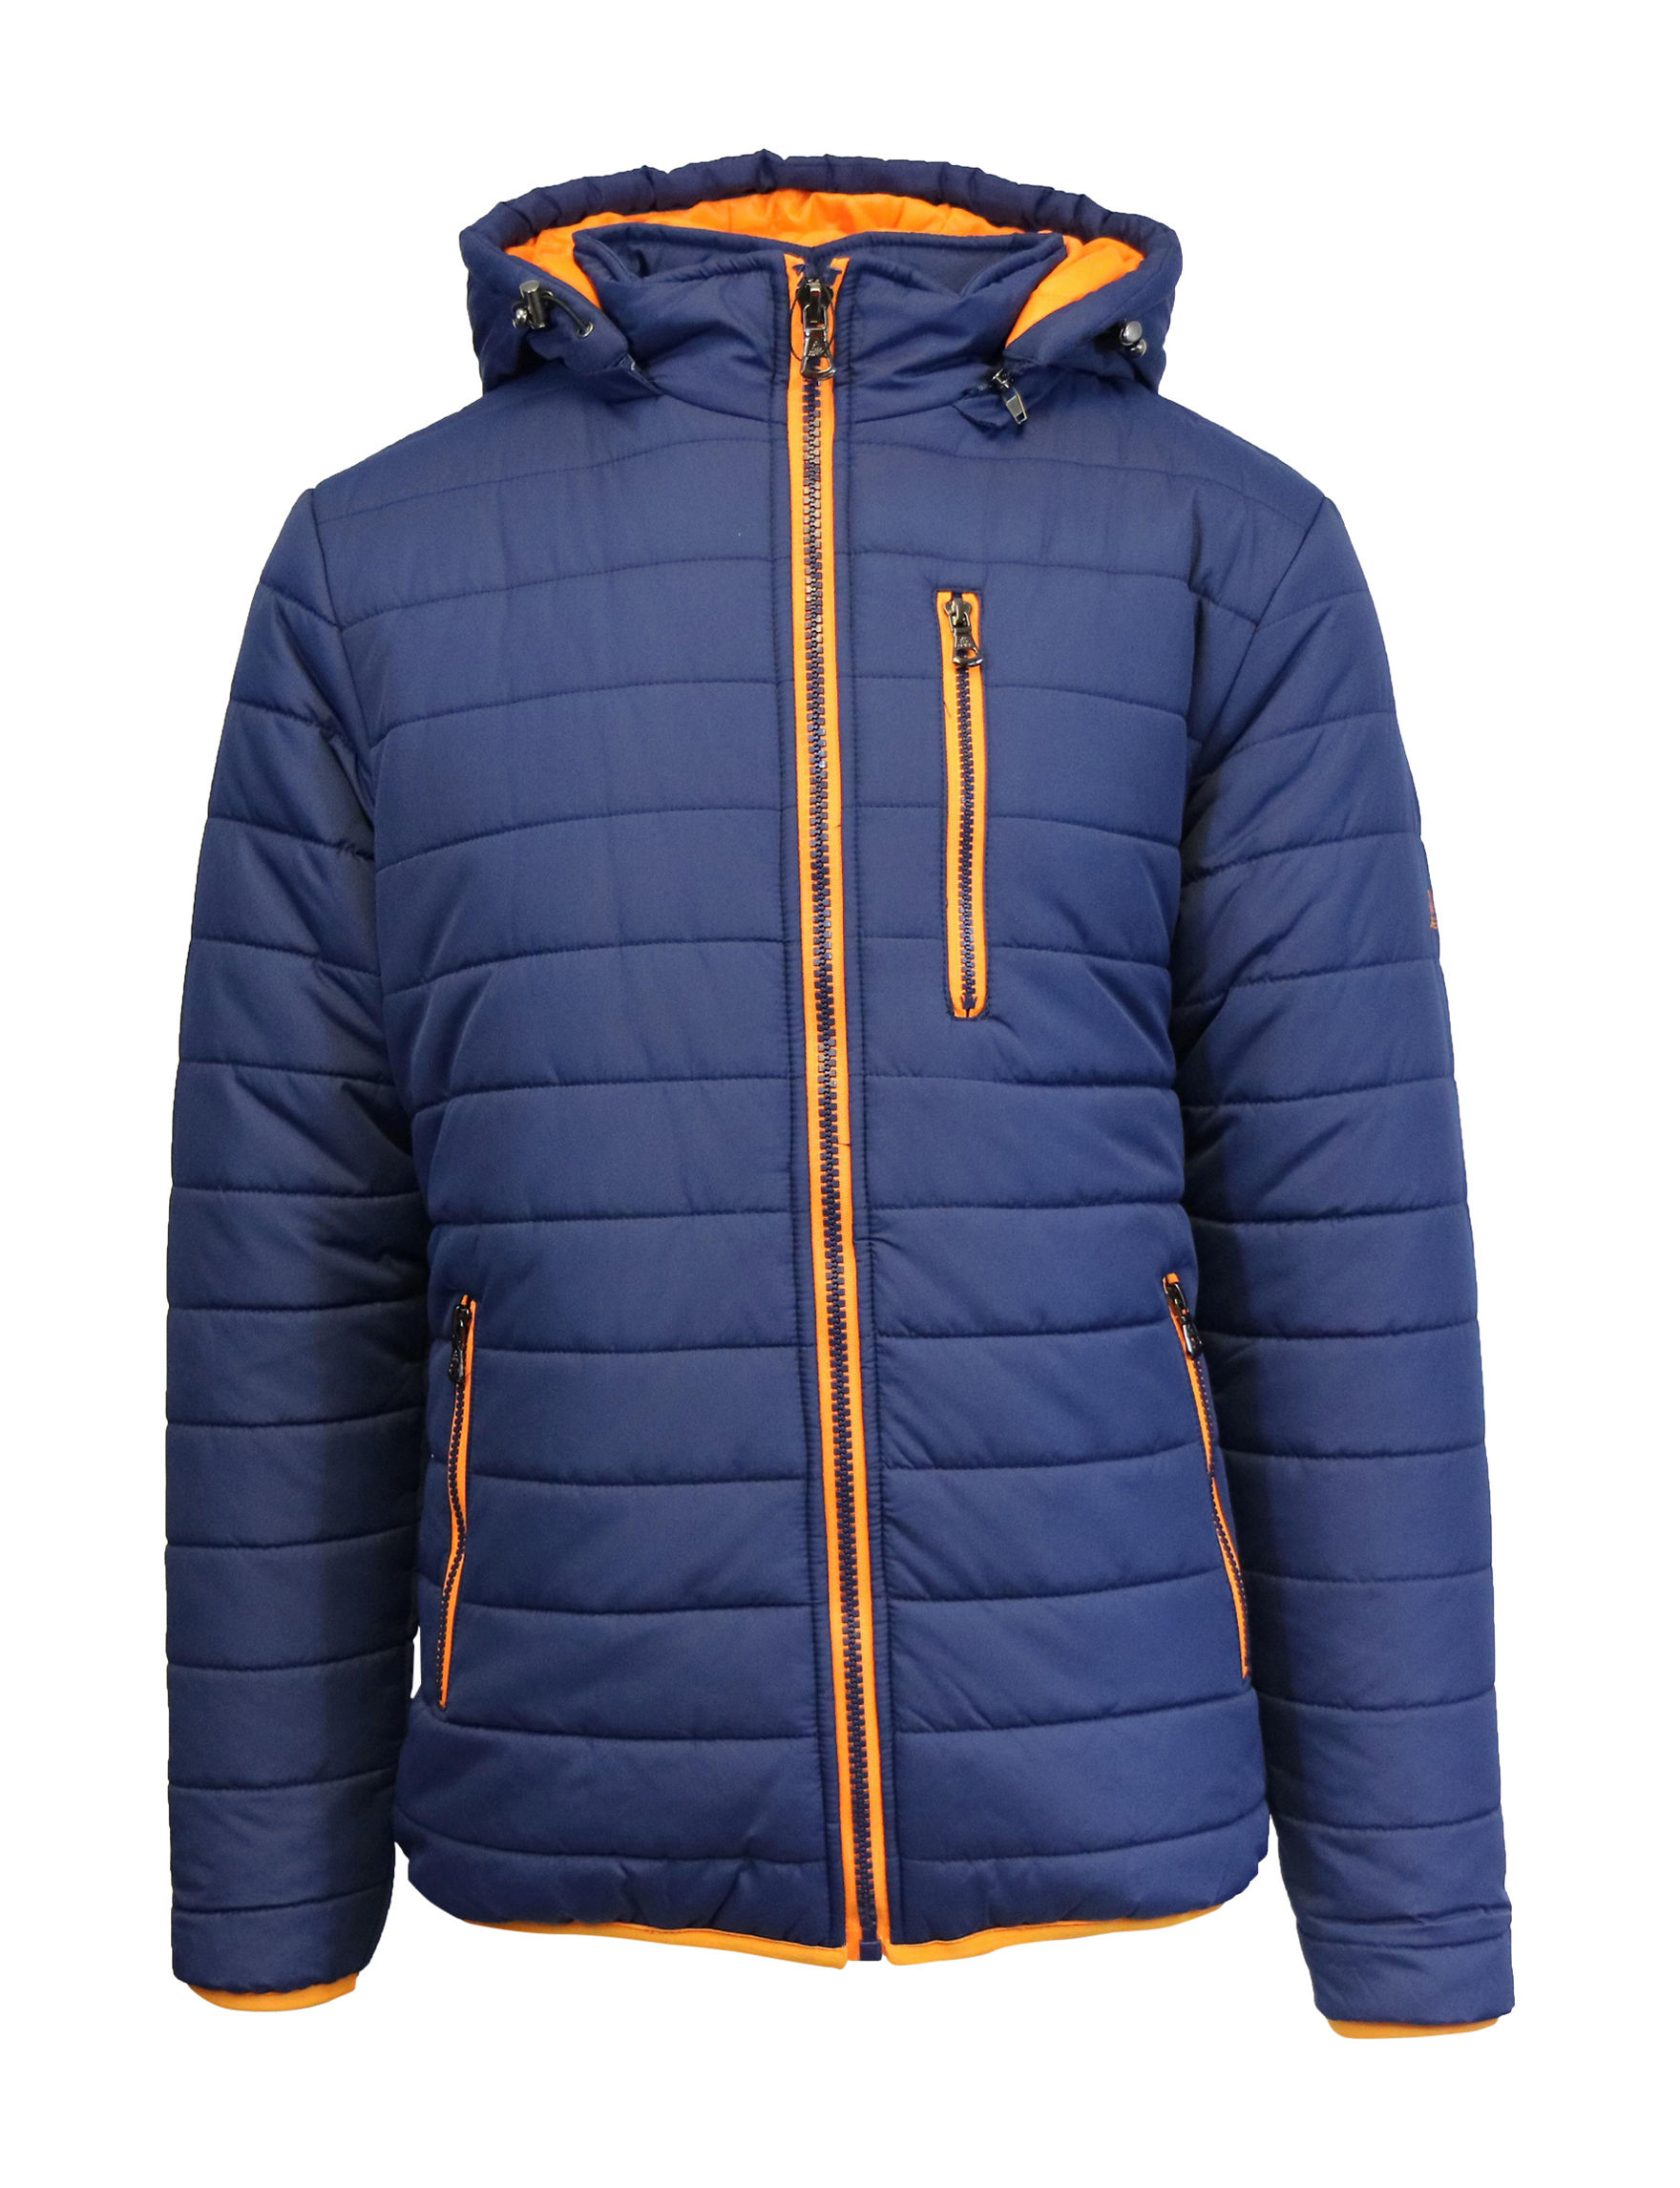 Galaxy by Harvic Orange/ Navy Puffer & Quilted Jackets